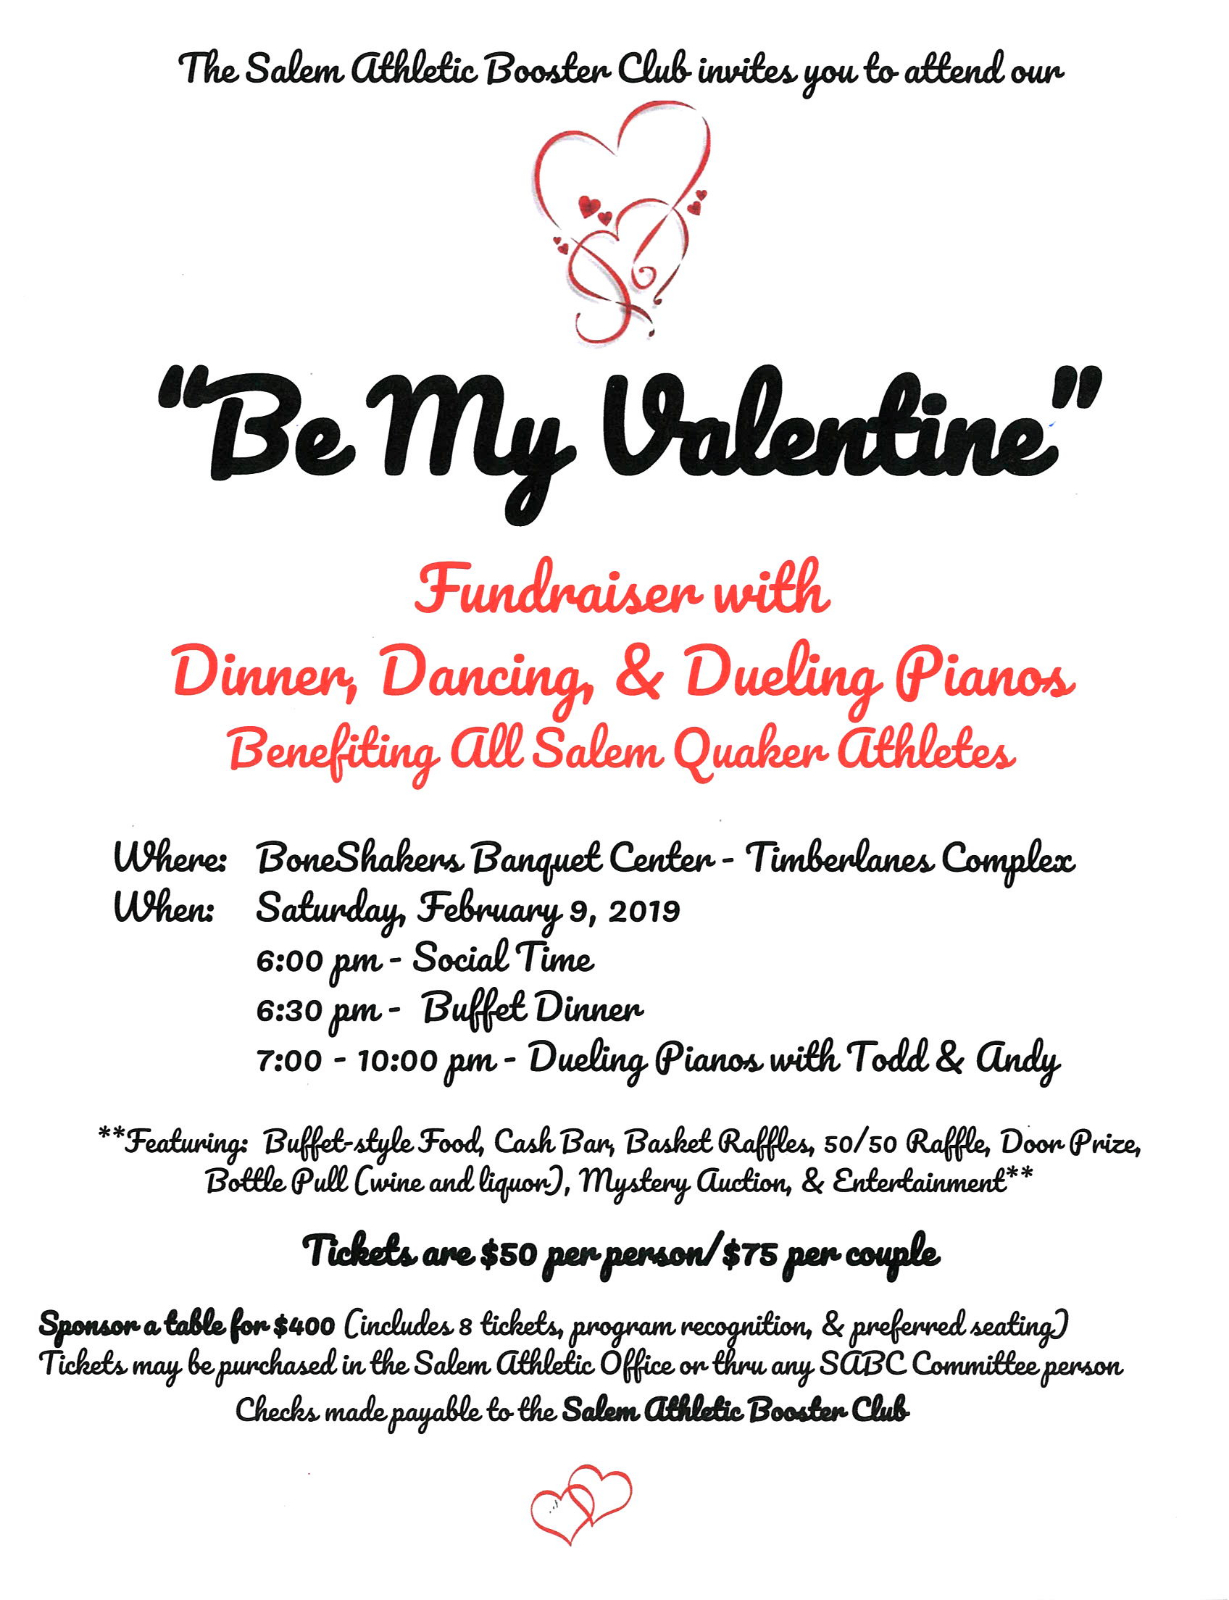 be my valentine fundraiser